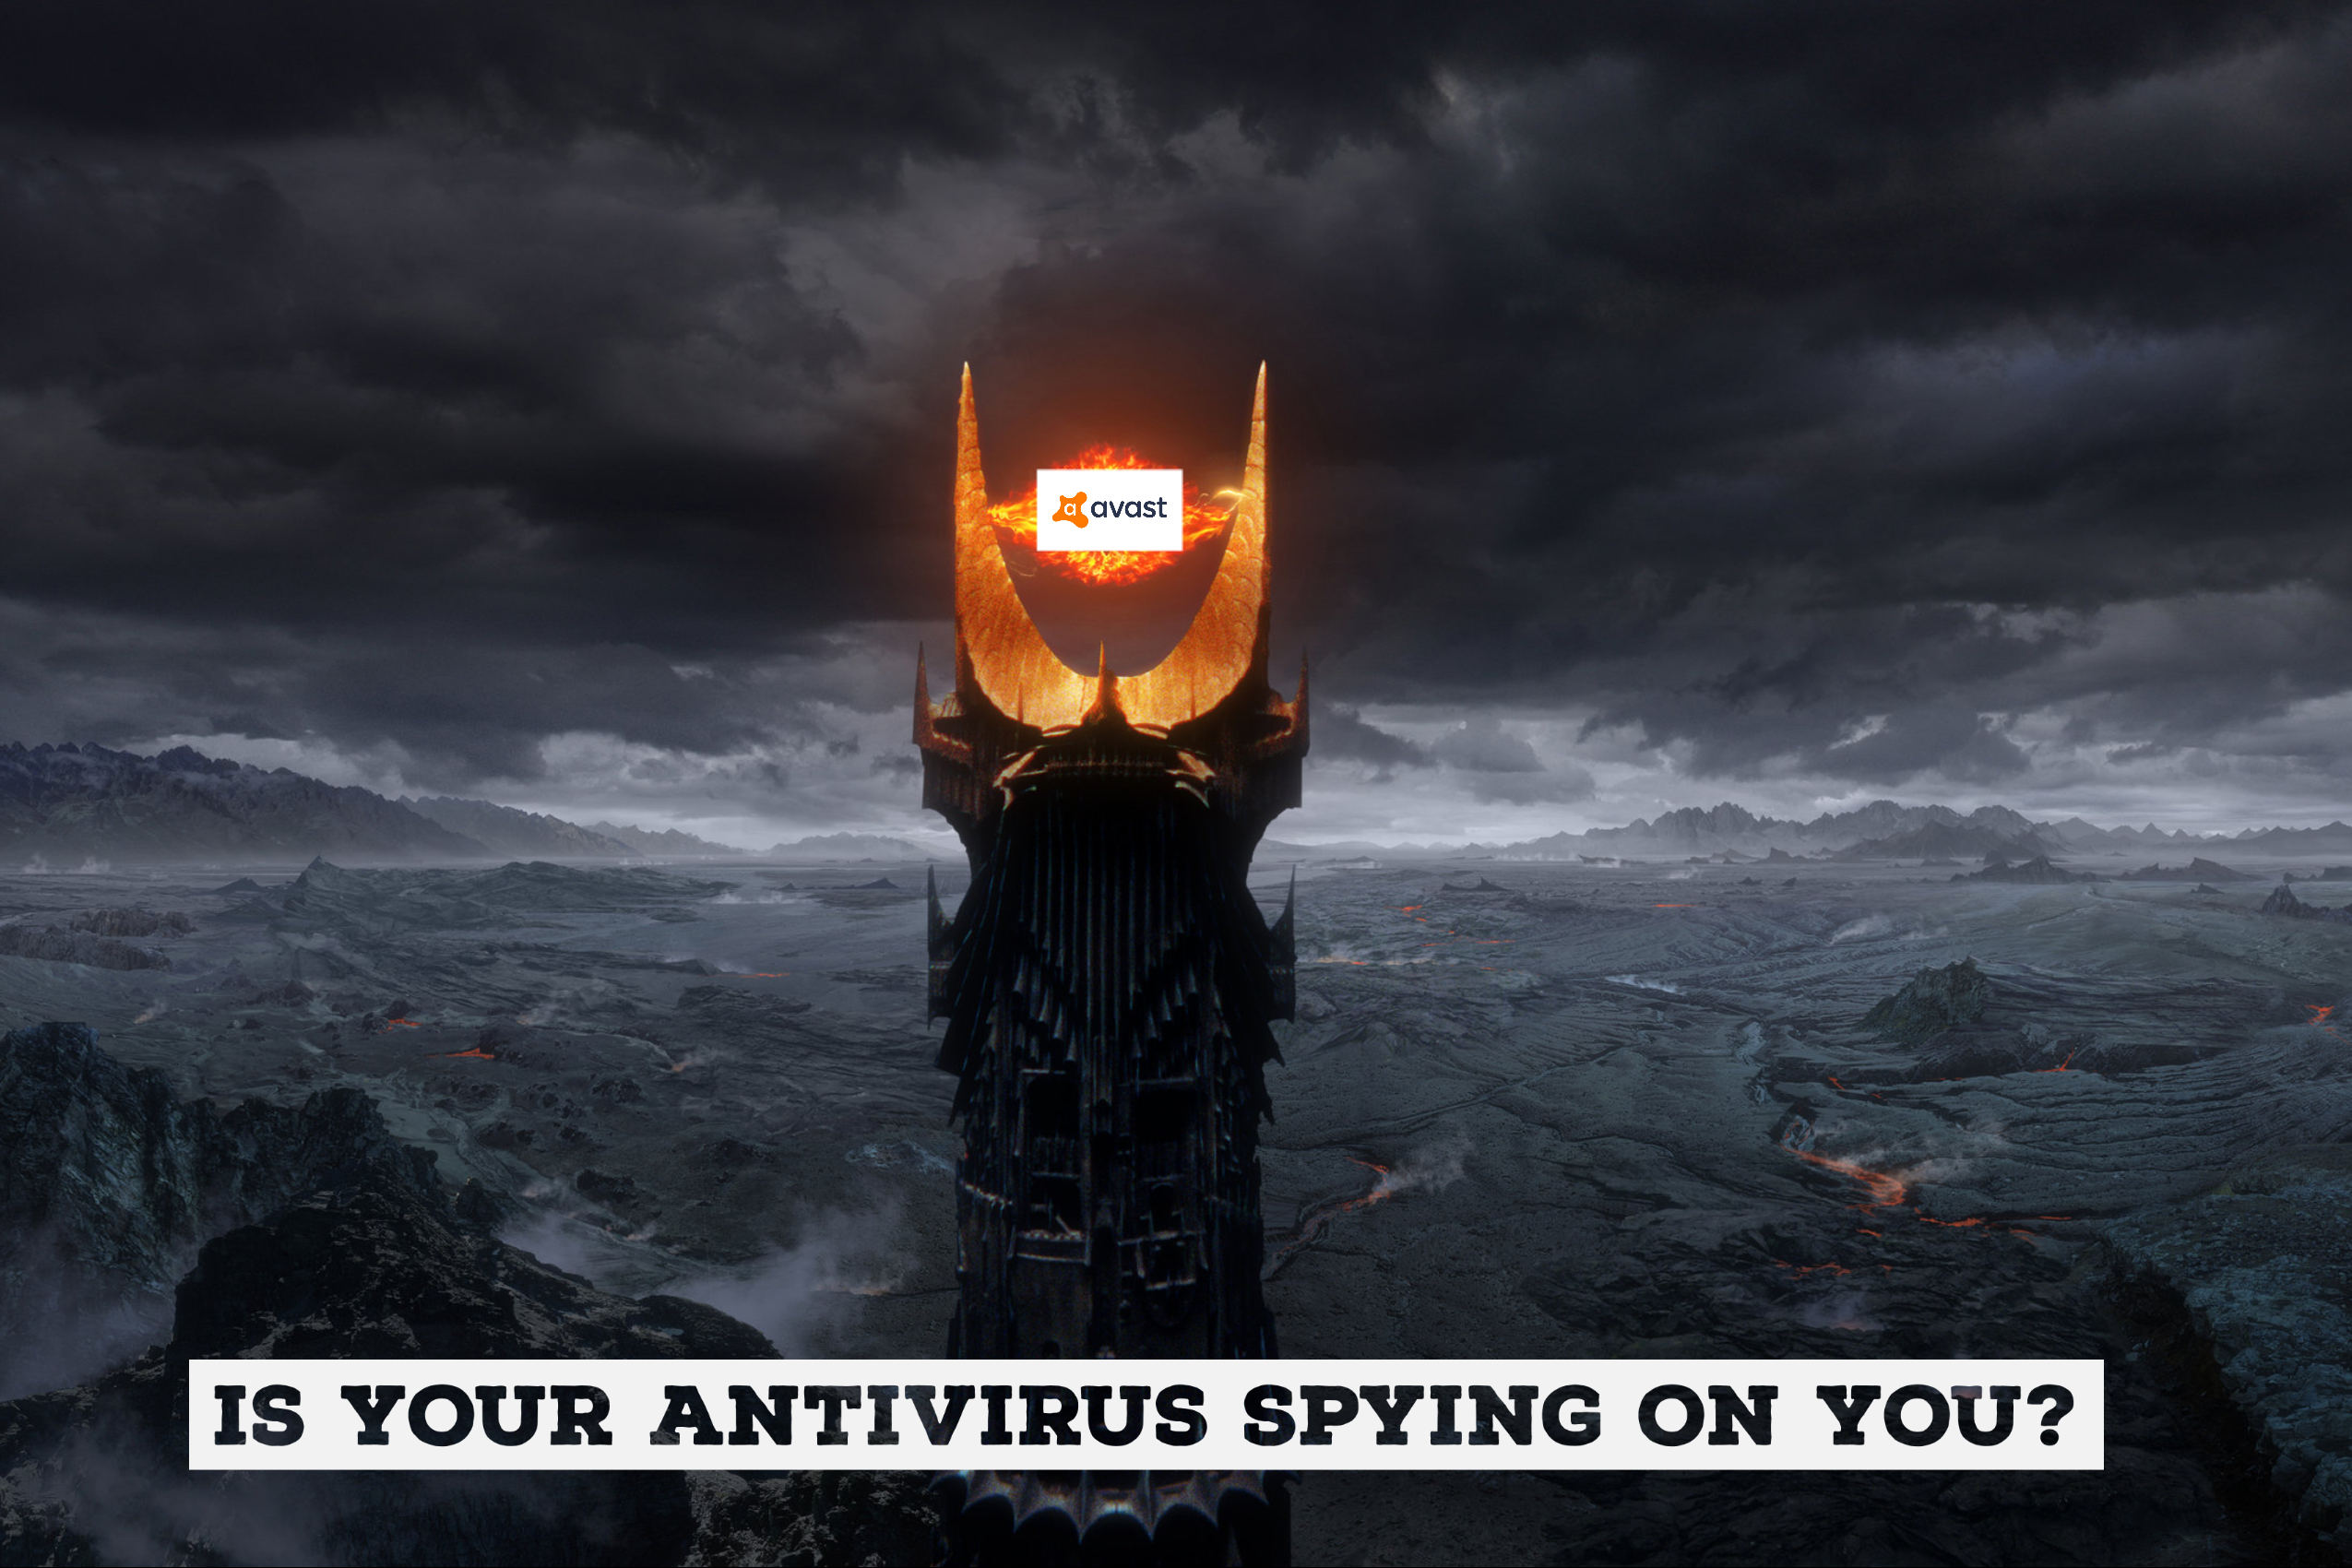 Is Your Antivirus Spying On You